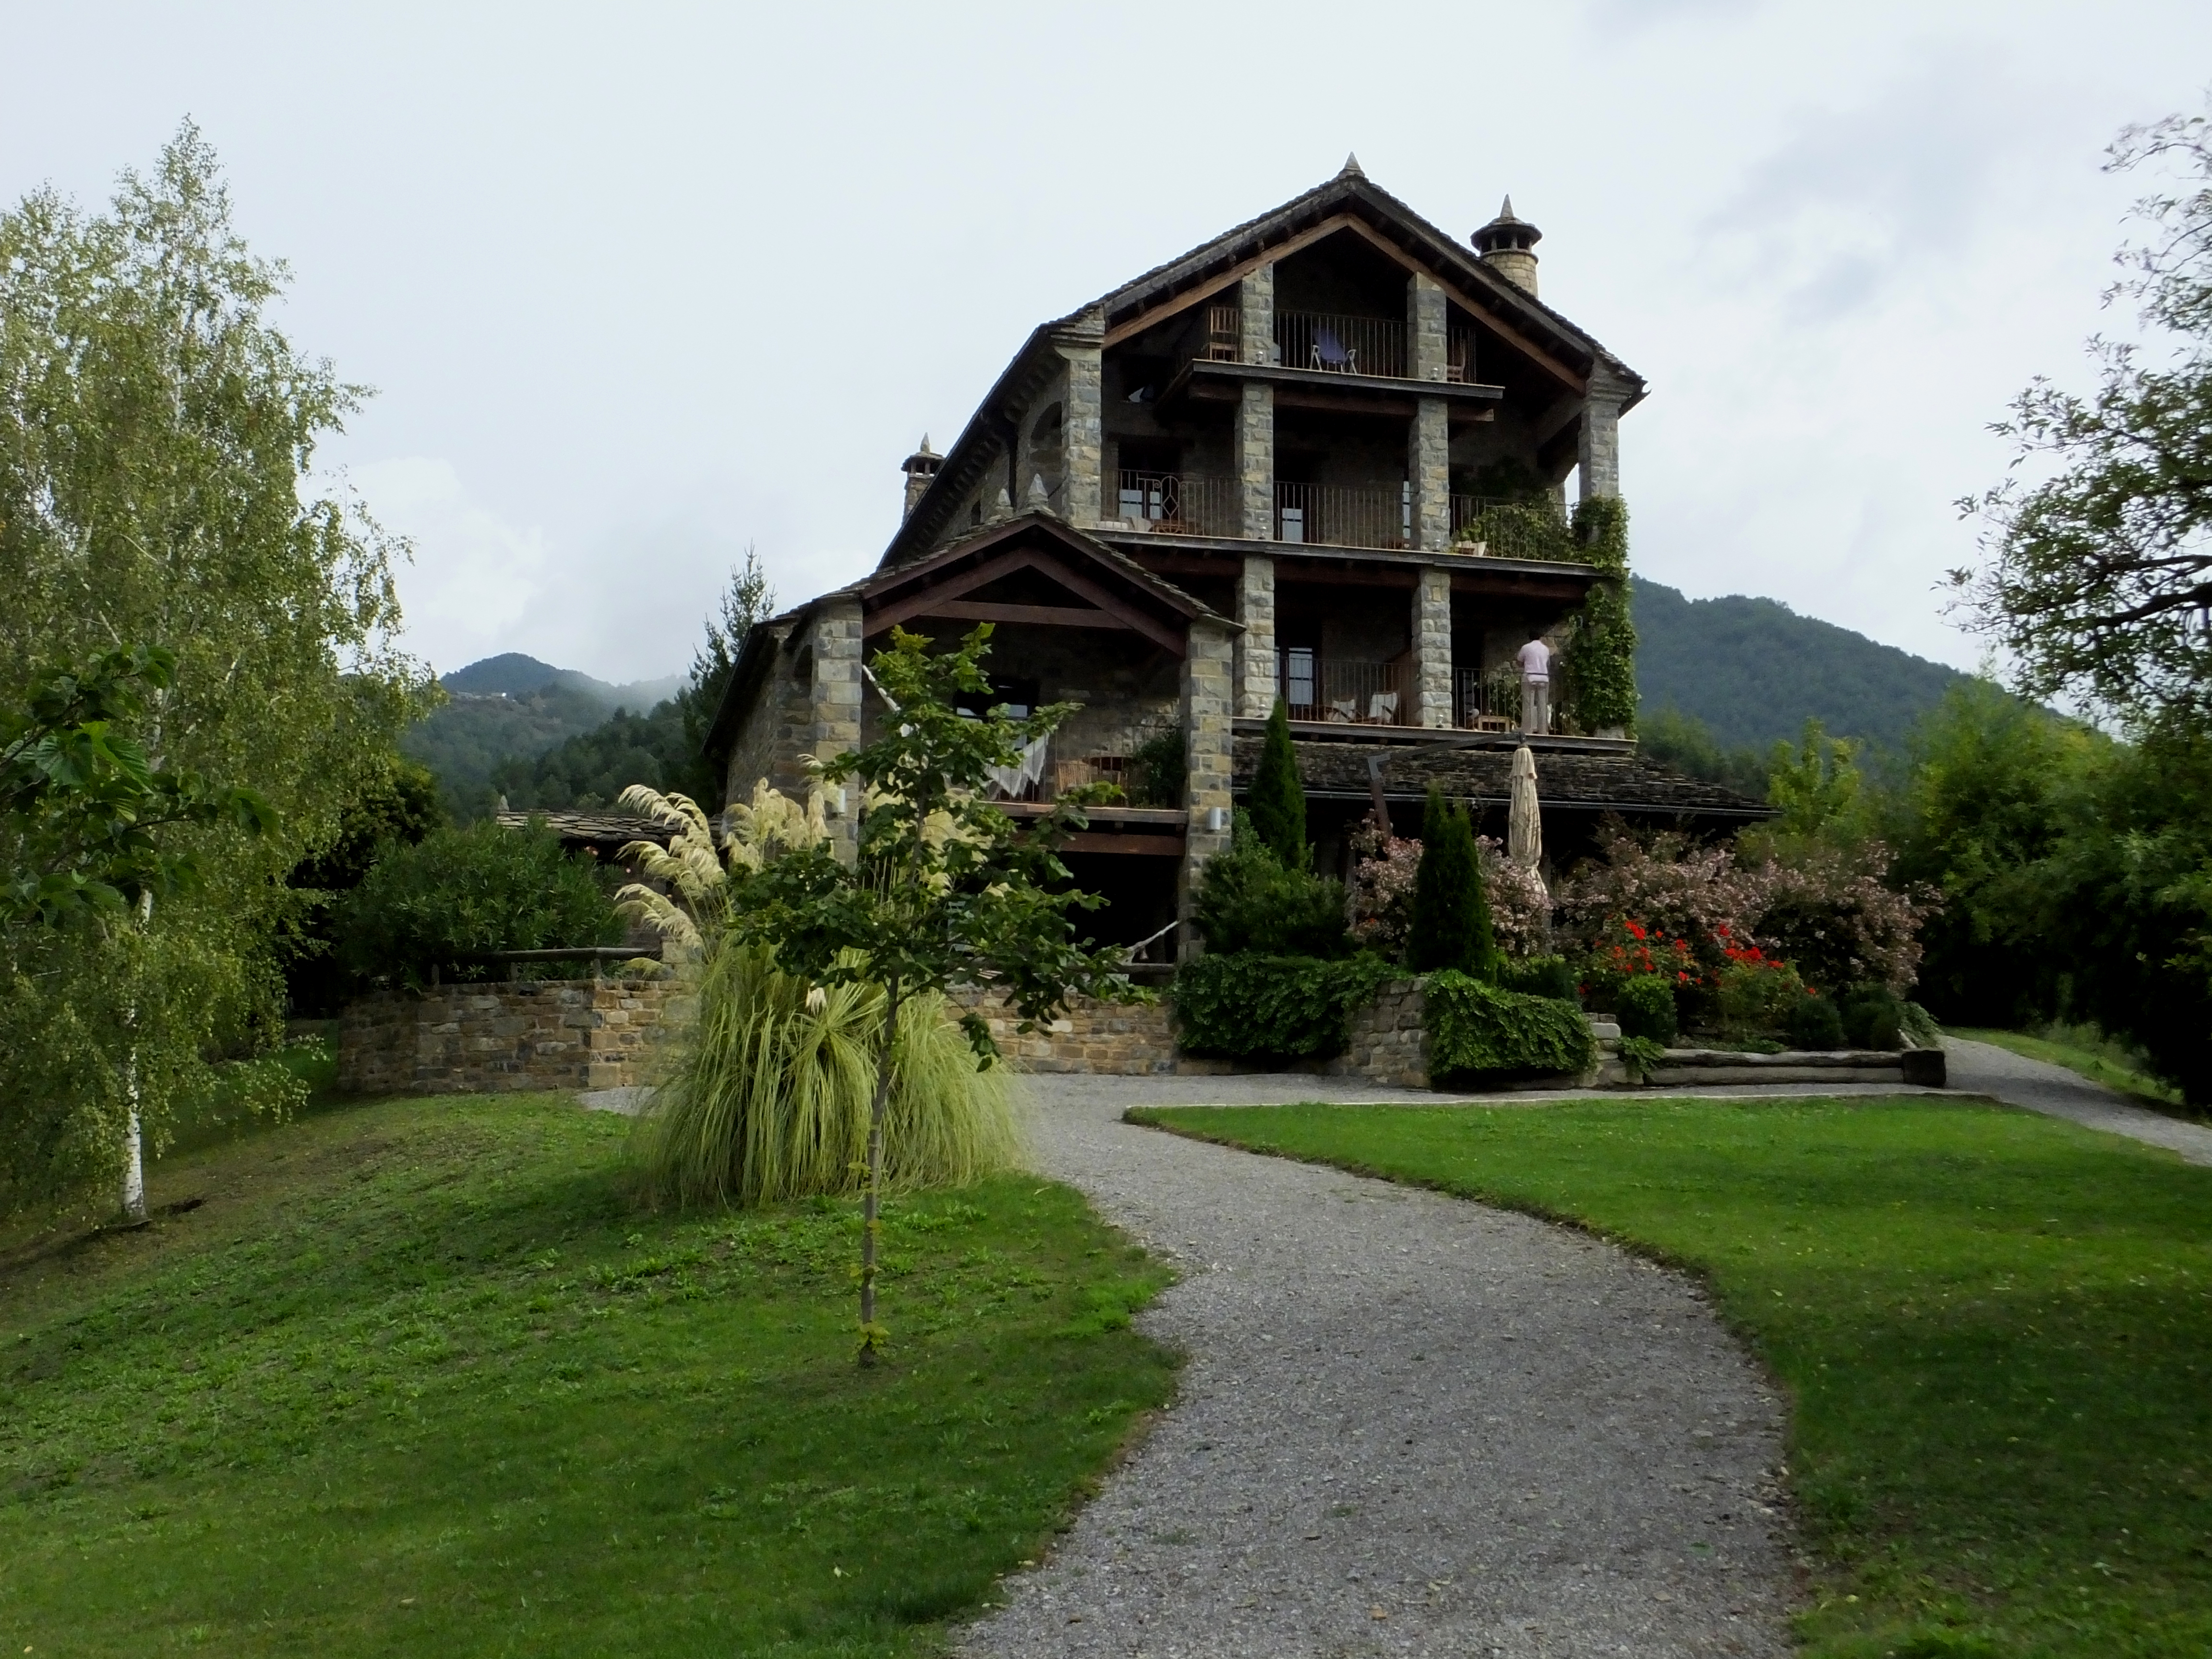 Three days in the pyrenees of spain part 2 the life of your time - Casa de san martin ...